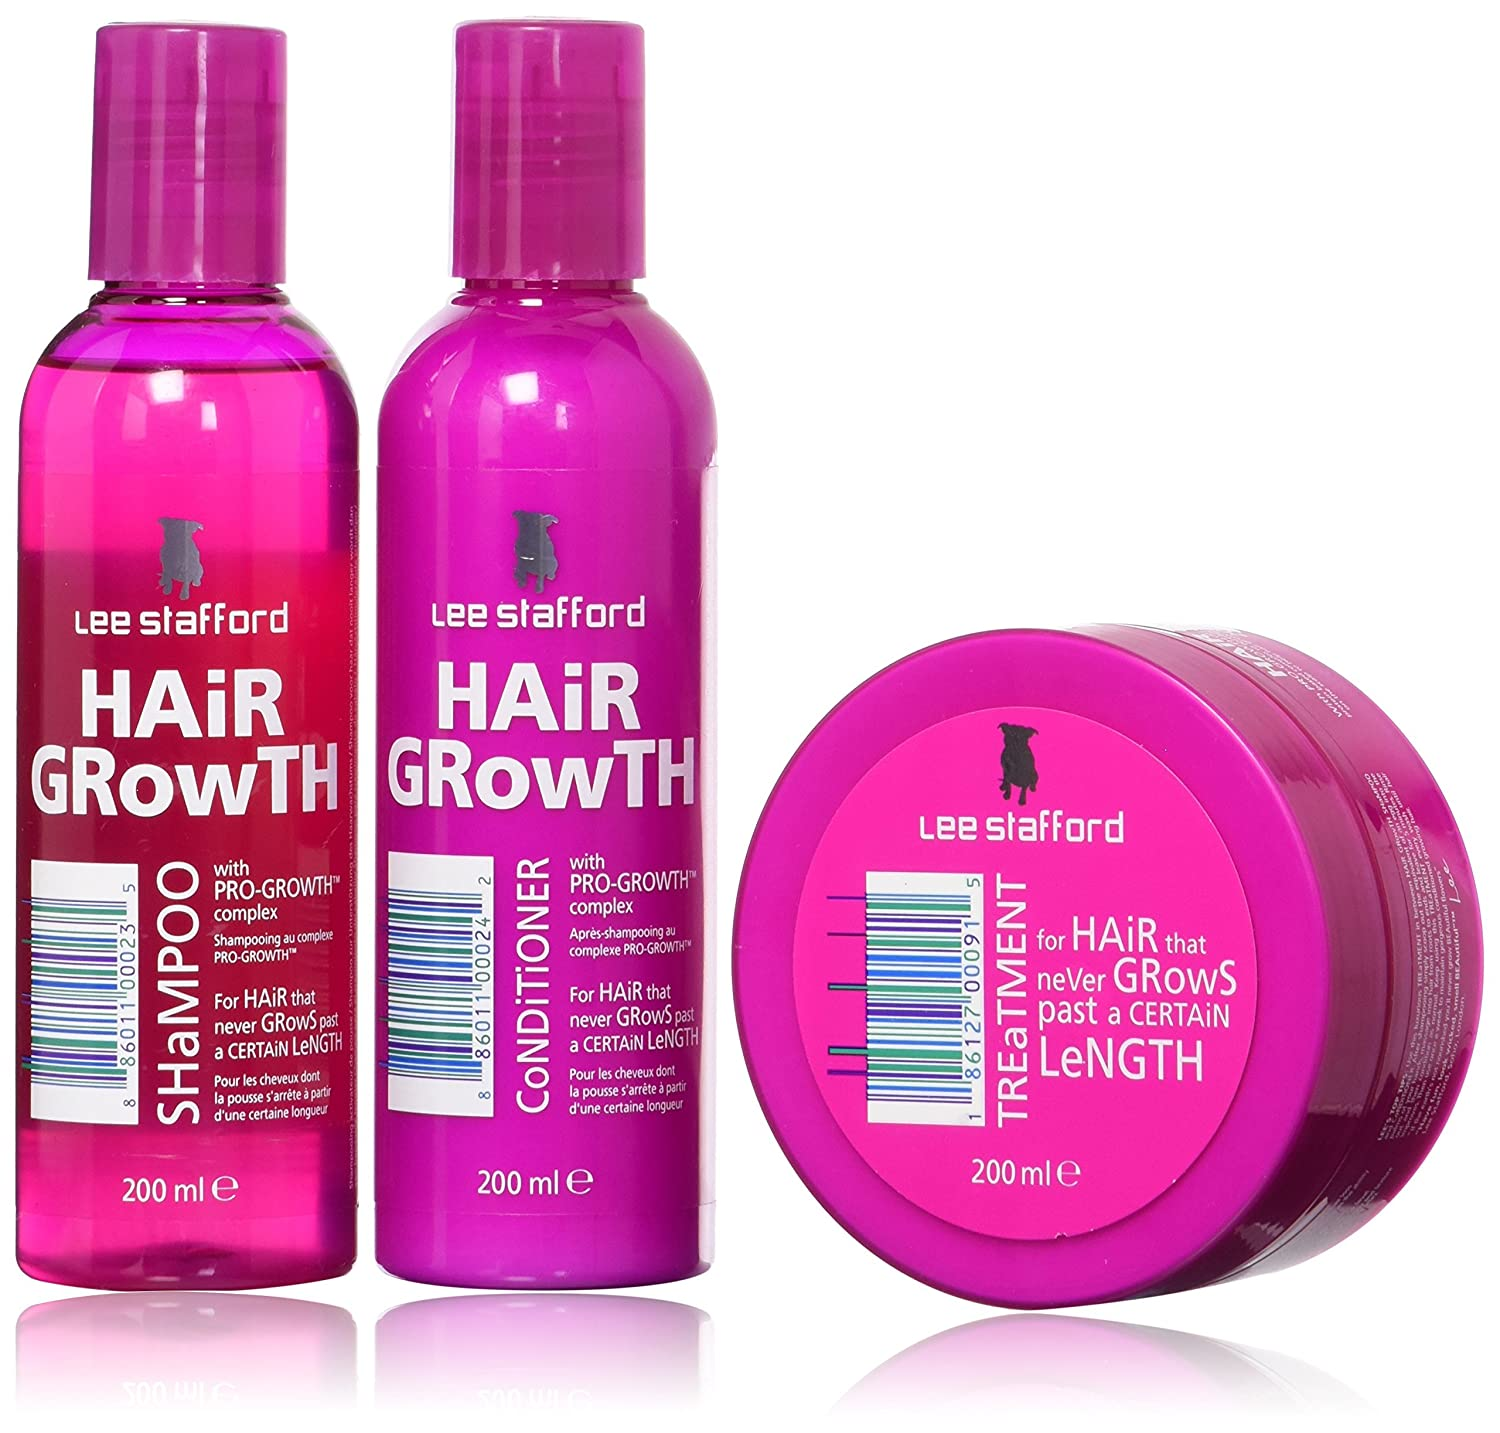 Lee Stafford Hair Growth Treatment X 2, champú X 2 & Conditioner X 2 Bundle …